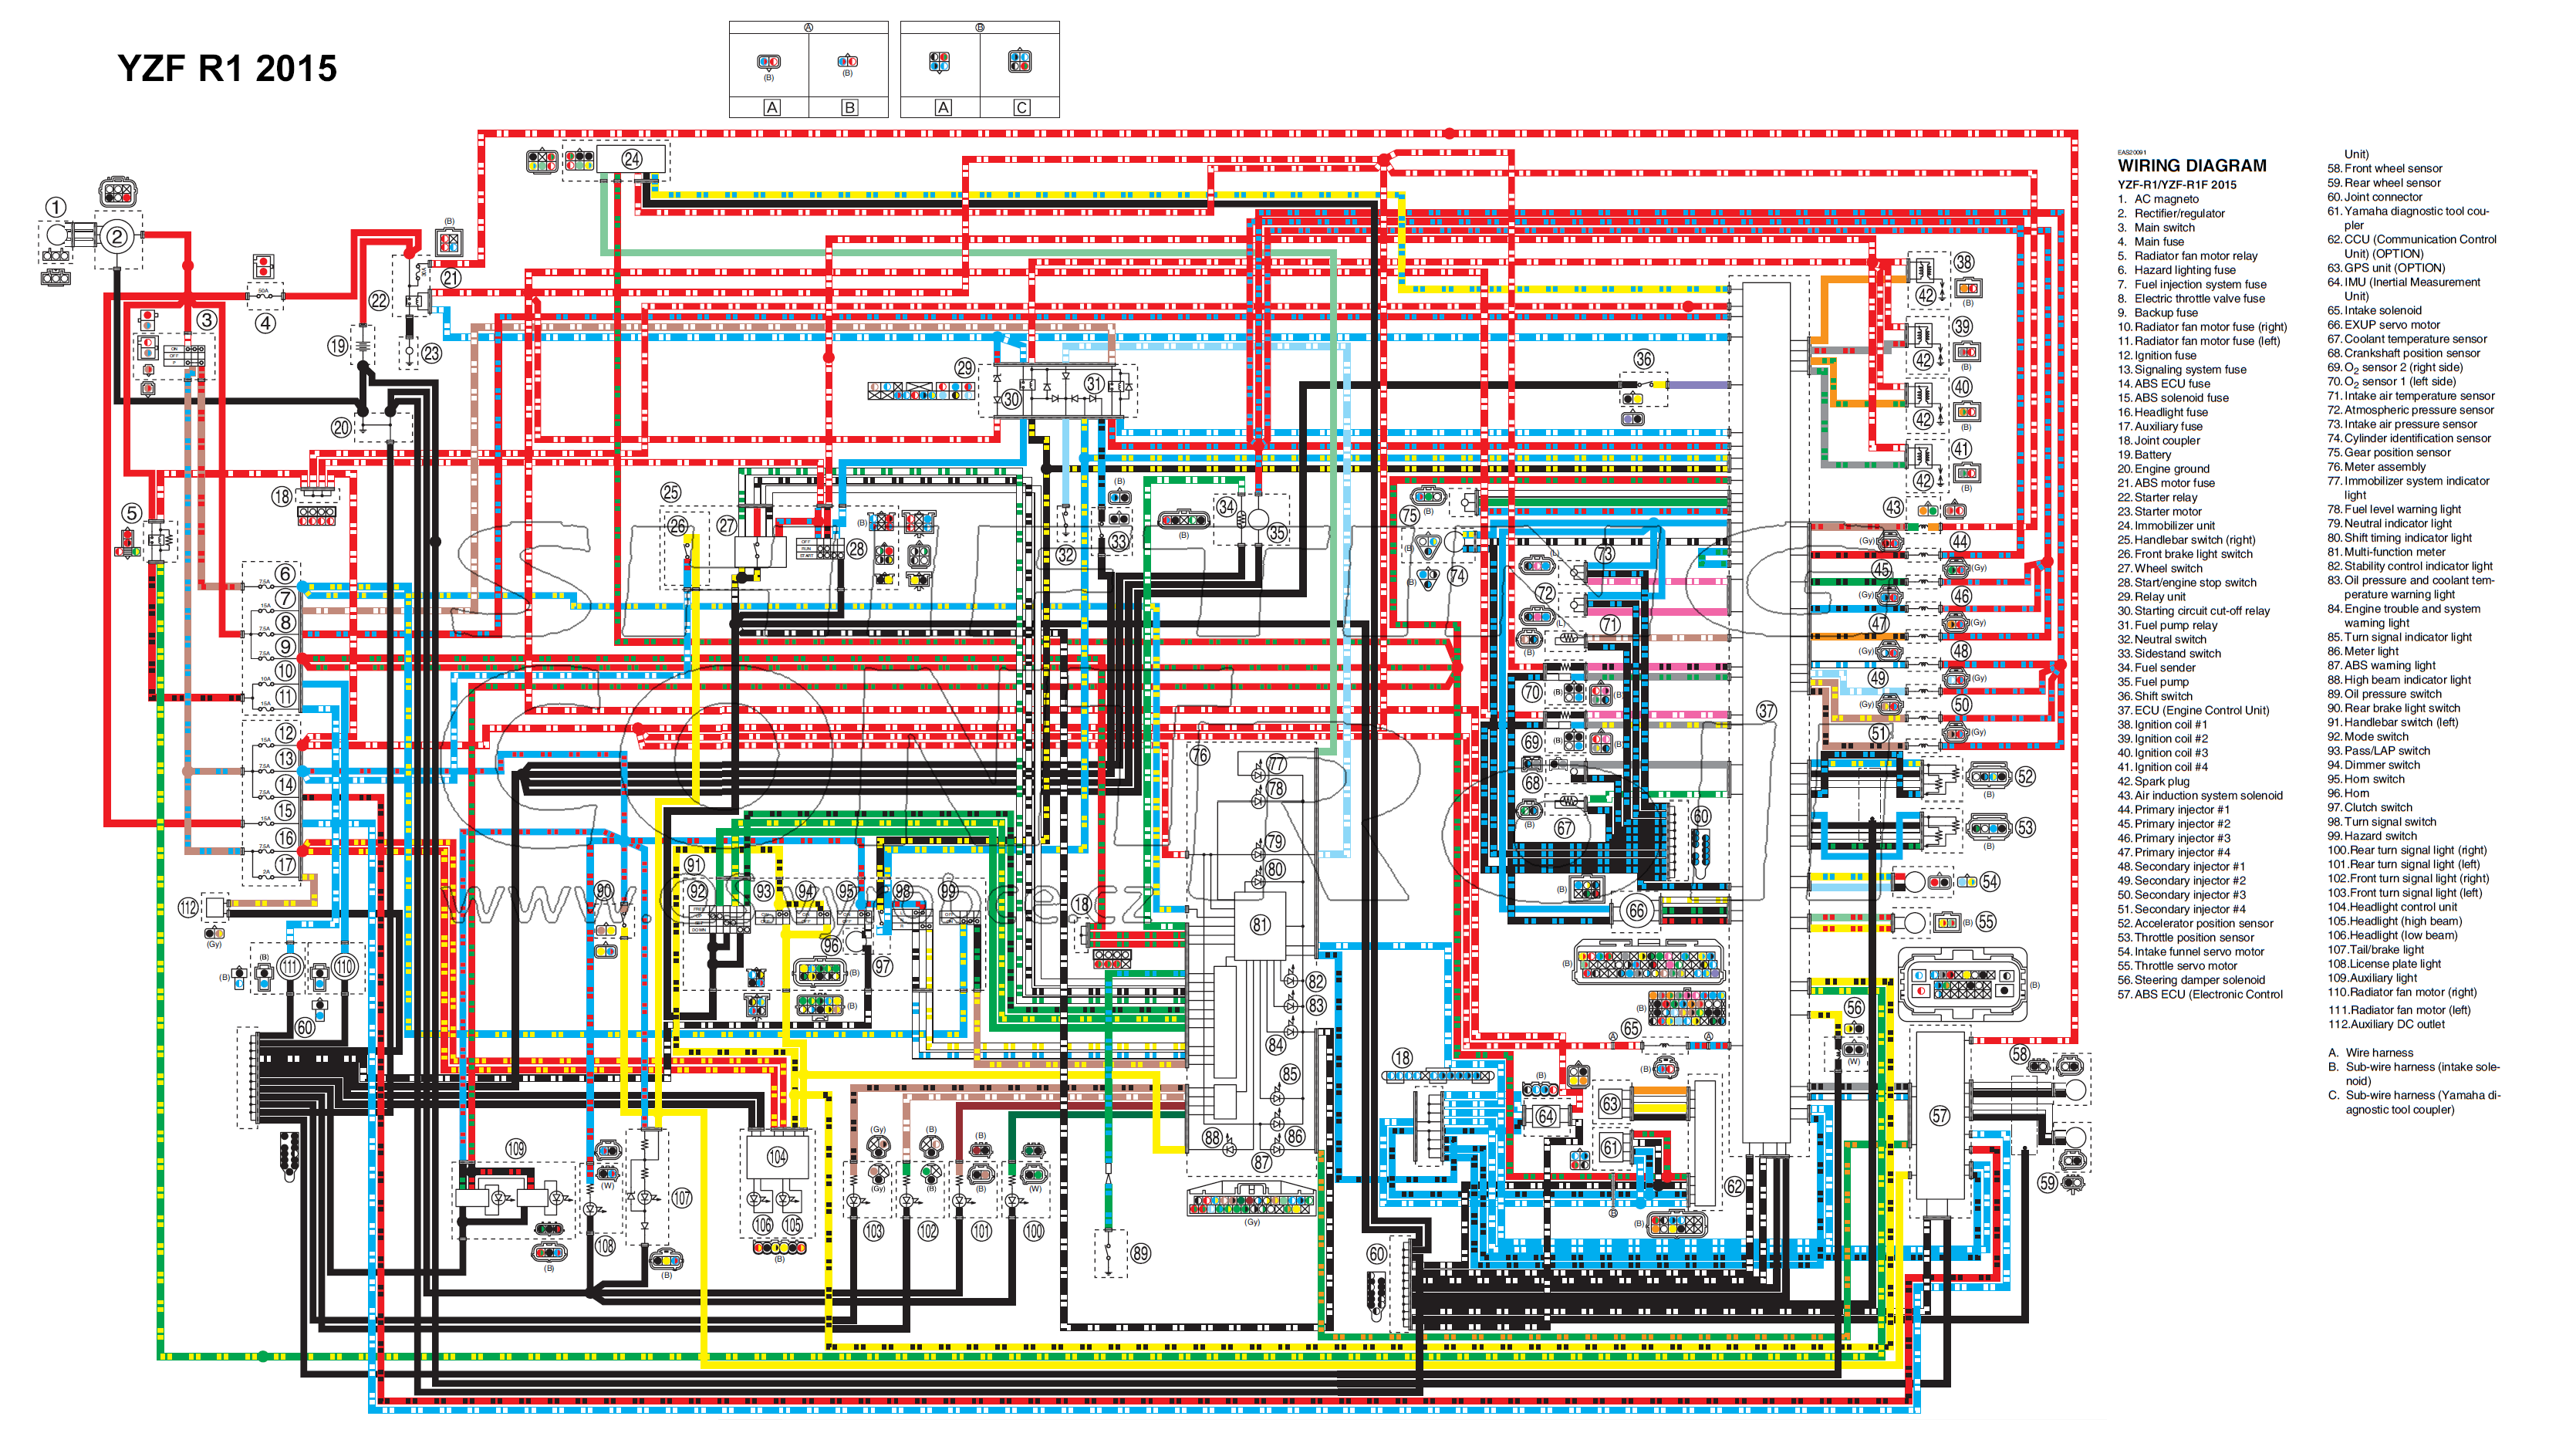 yzf r1 wire diagram online schematics diagram rh delvato co yamaha r1  wiring diagram 2000 yamaha r1 wiring diagram 2007